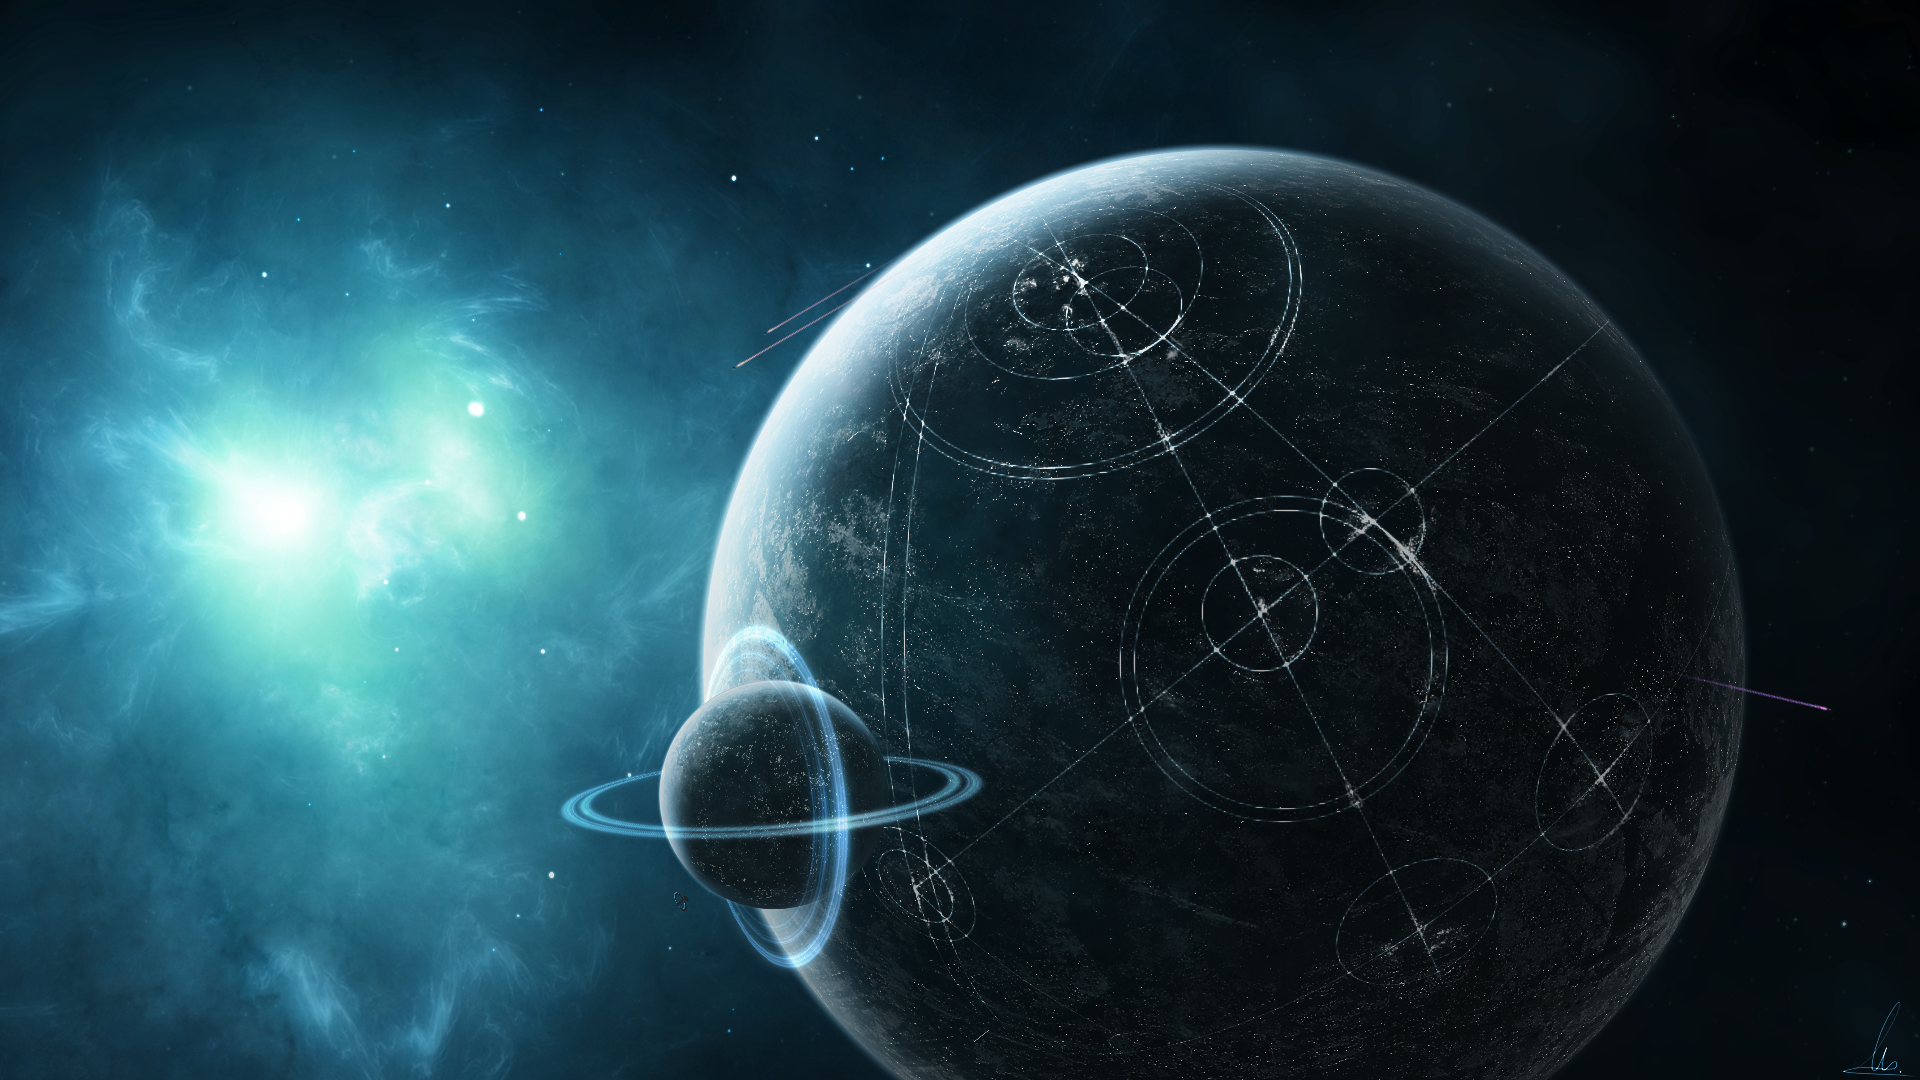 Cool Alien Wallpaper, Alien Pics for Windows and Mac Systems, NMgnCP